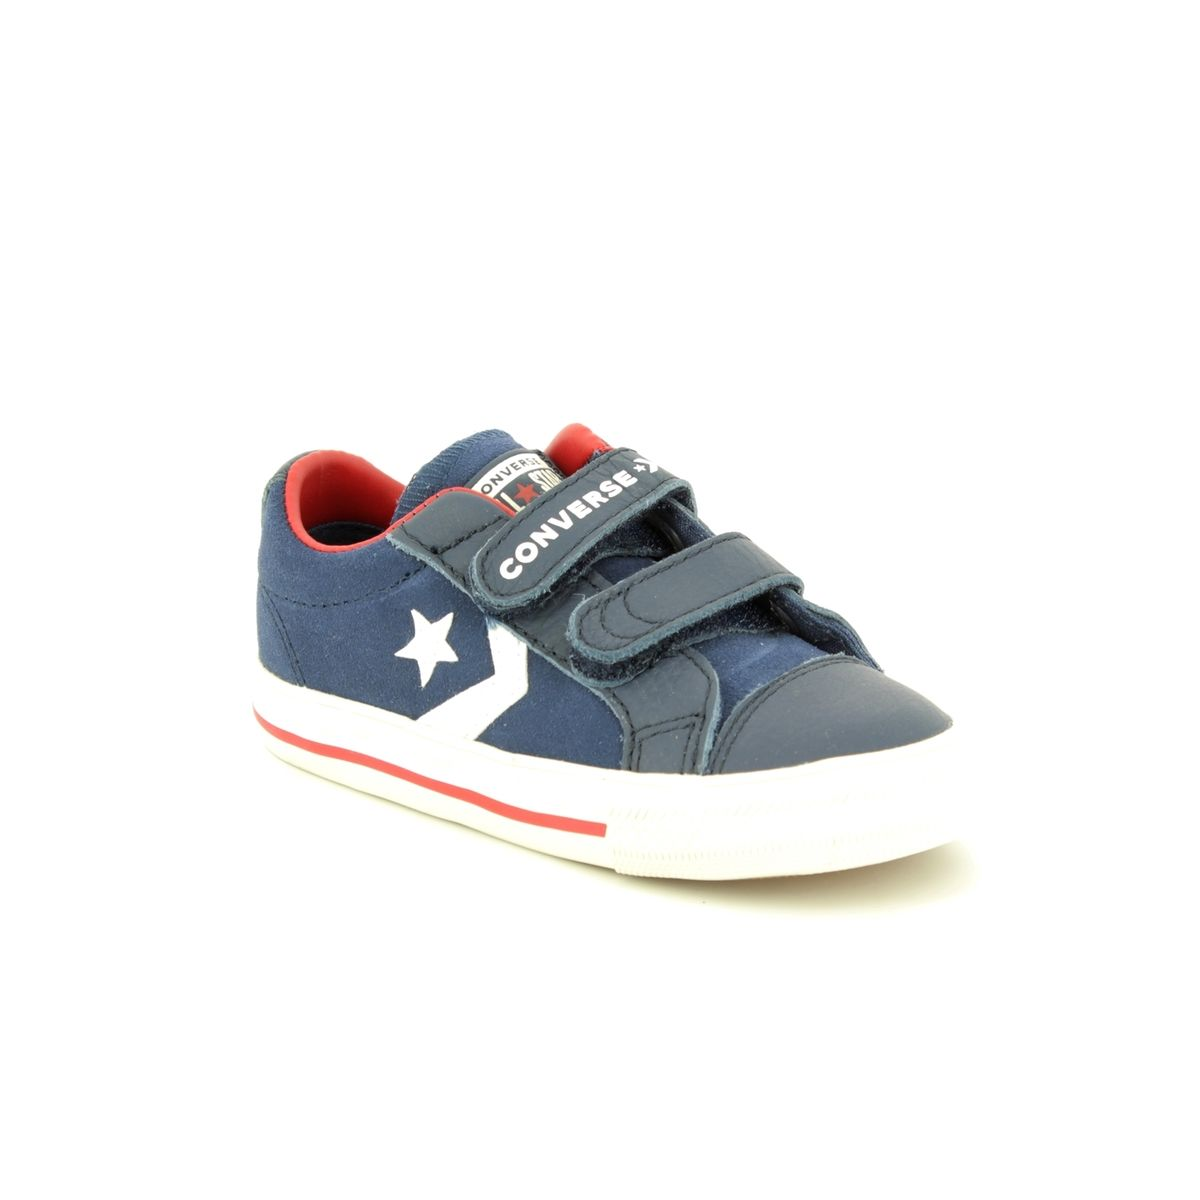 Baby White Converse Pram Shoes 762767c Star Player Velcro At Begg Shoes Bags